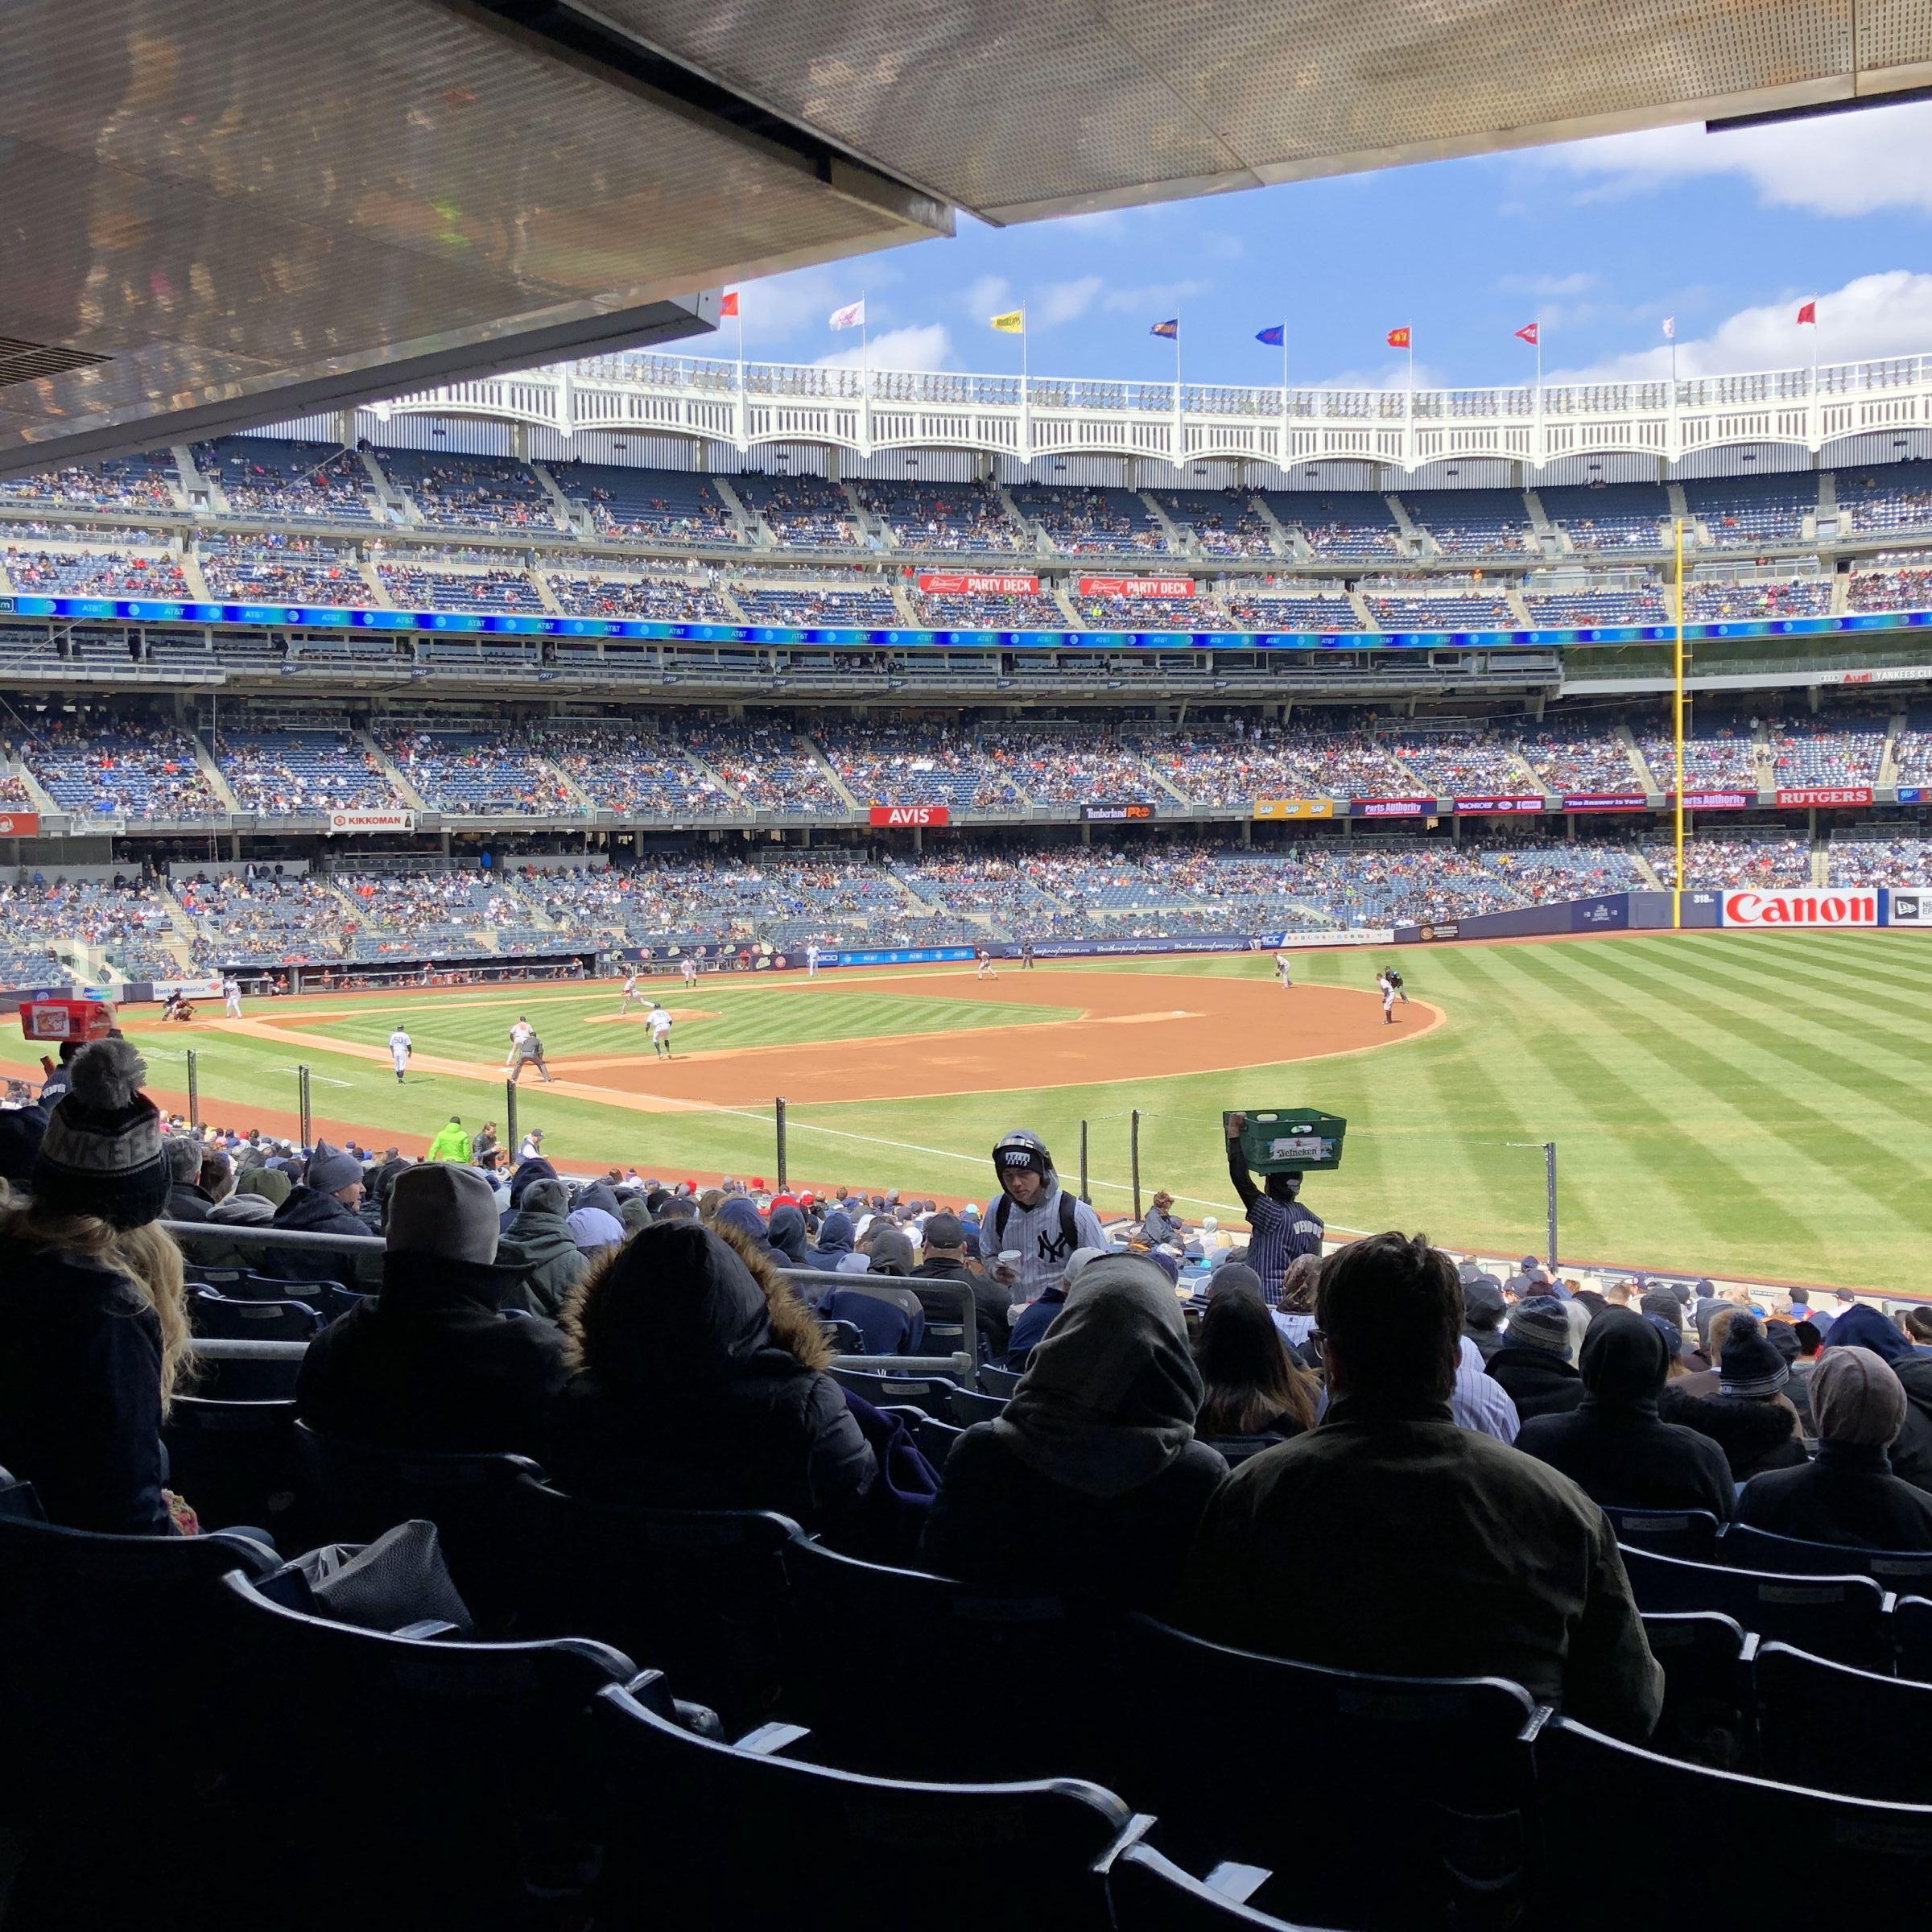 New York Yankees Seat View for Yankee Stadium Section 110, Row 28, Seat 5